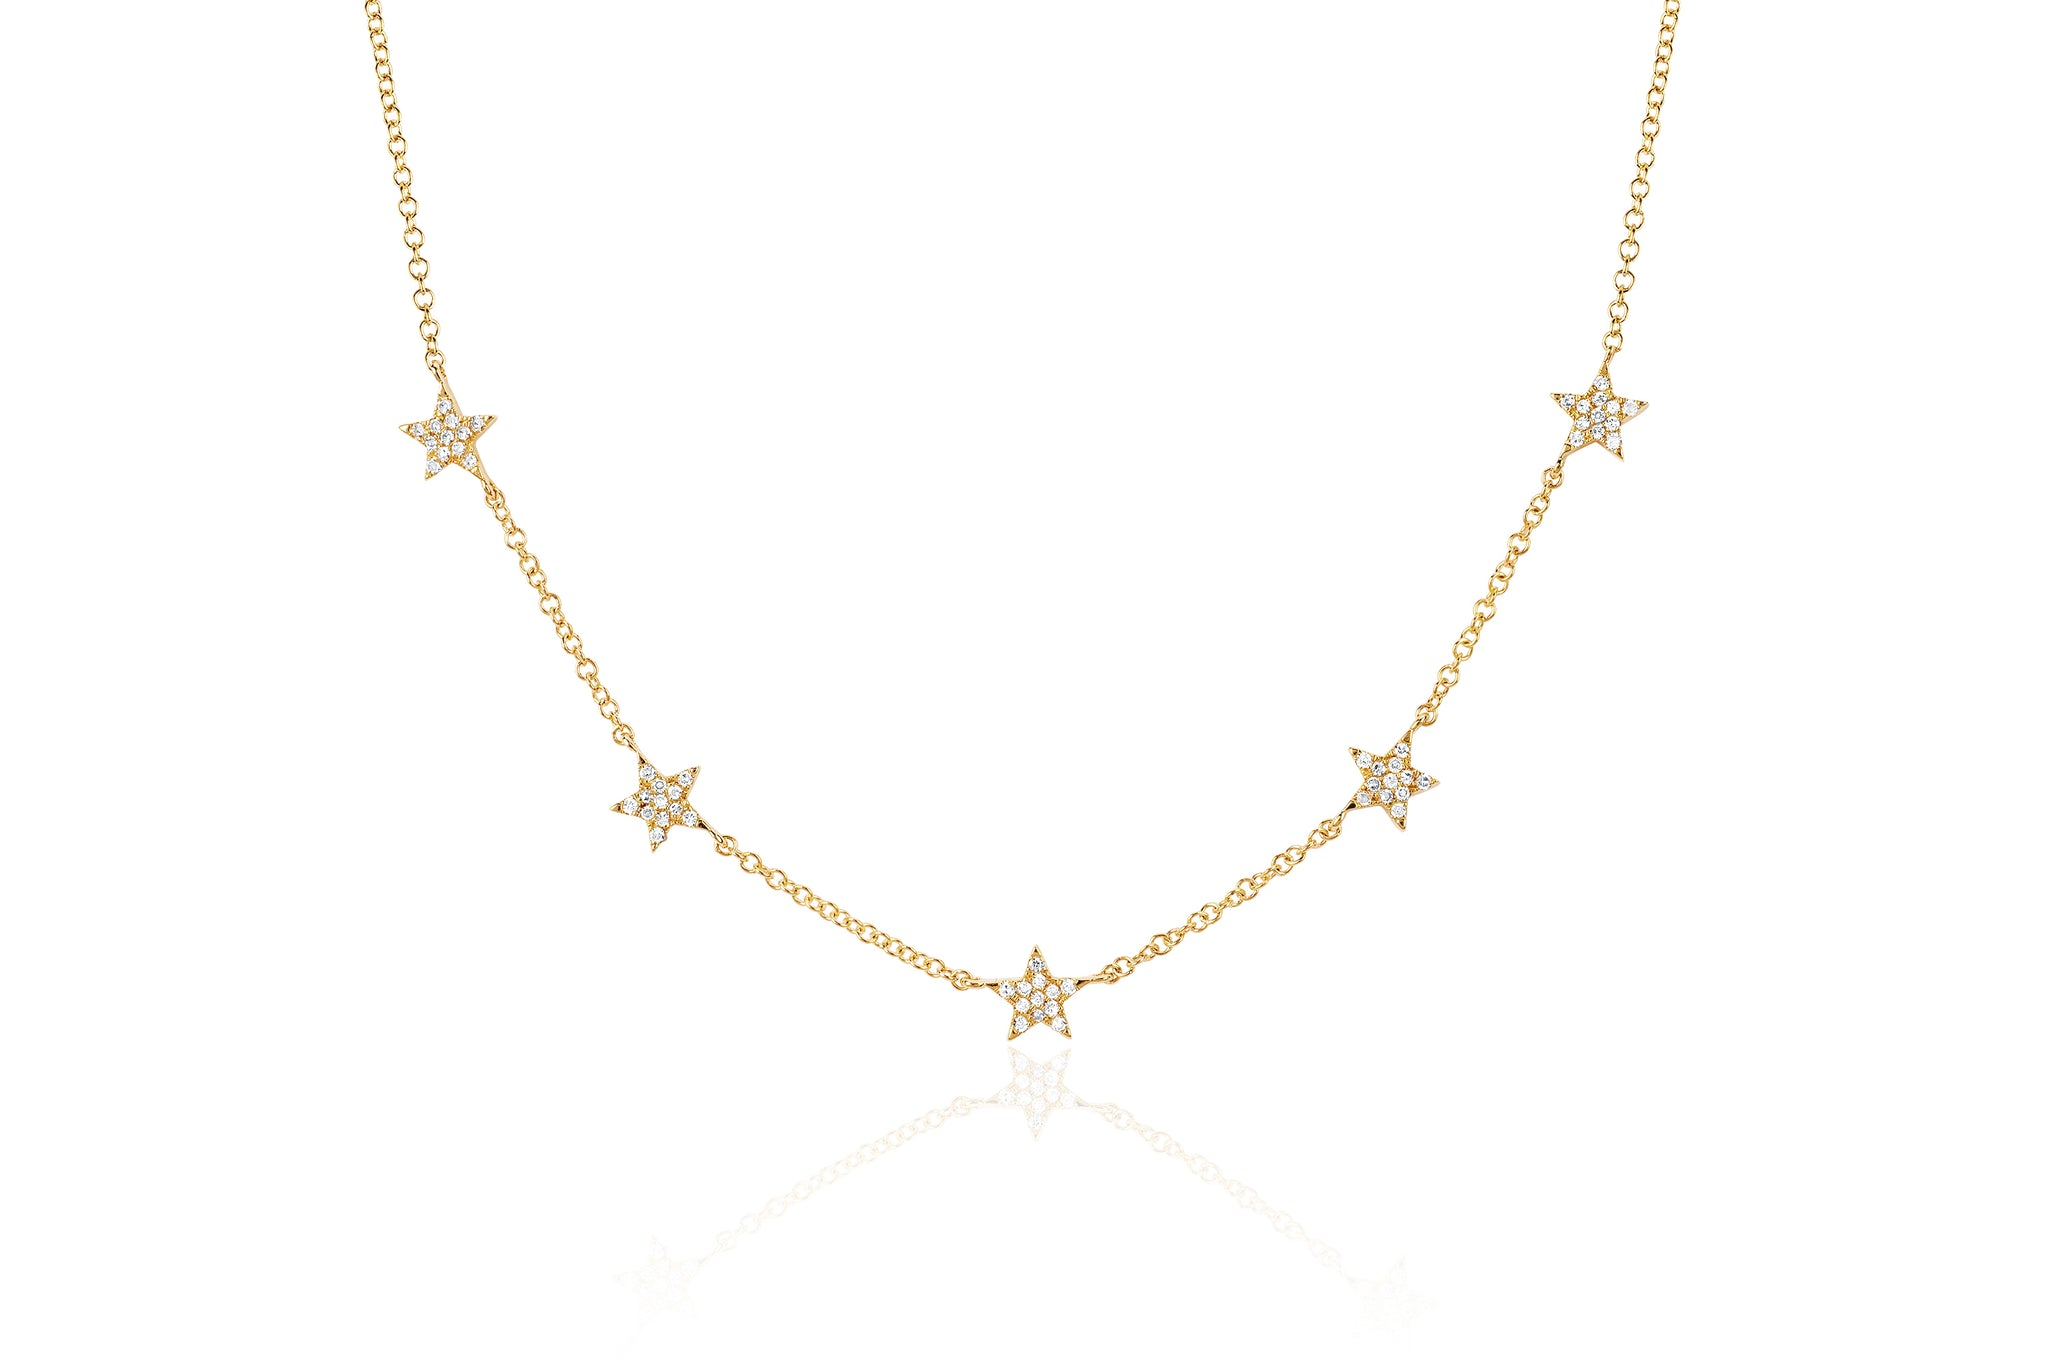 by large products open fullsizerender x star jewels joanne necklace